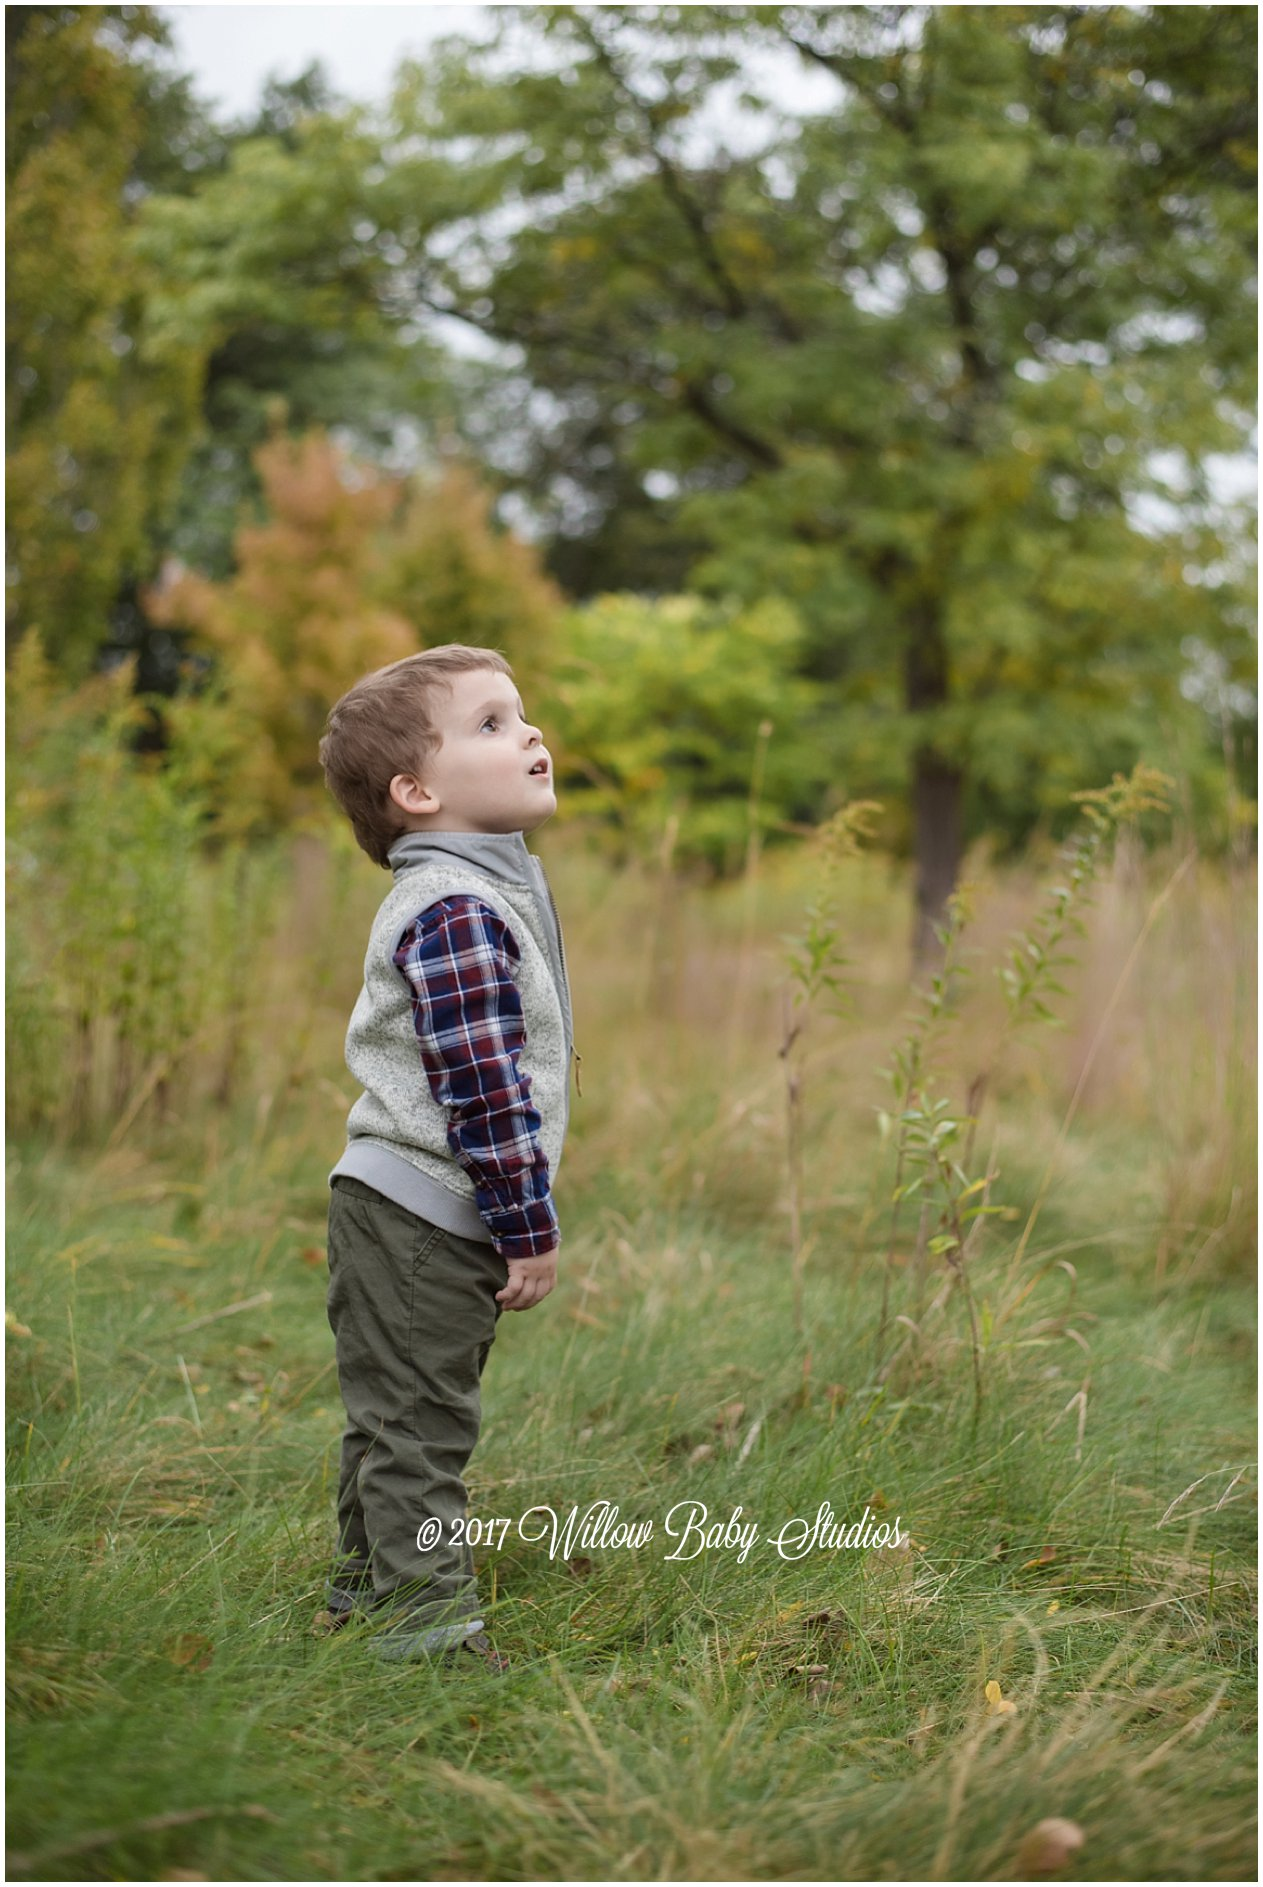 three year old on the edge of nature looking into the distance